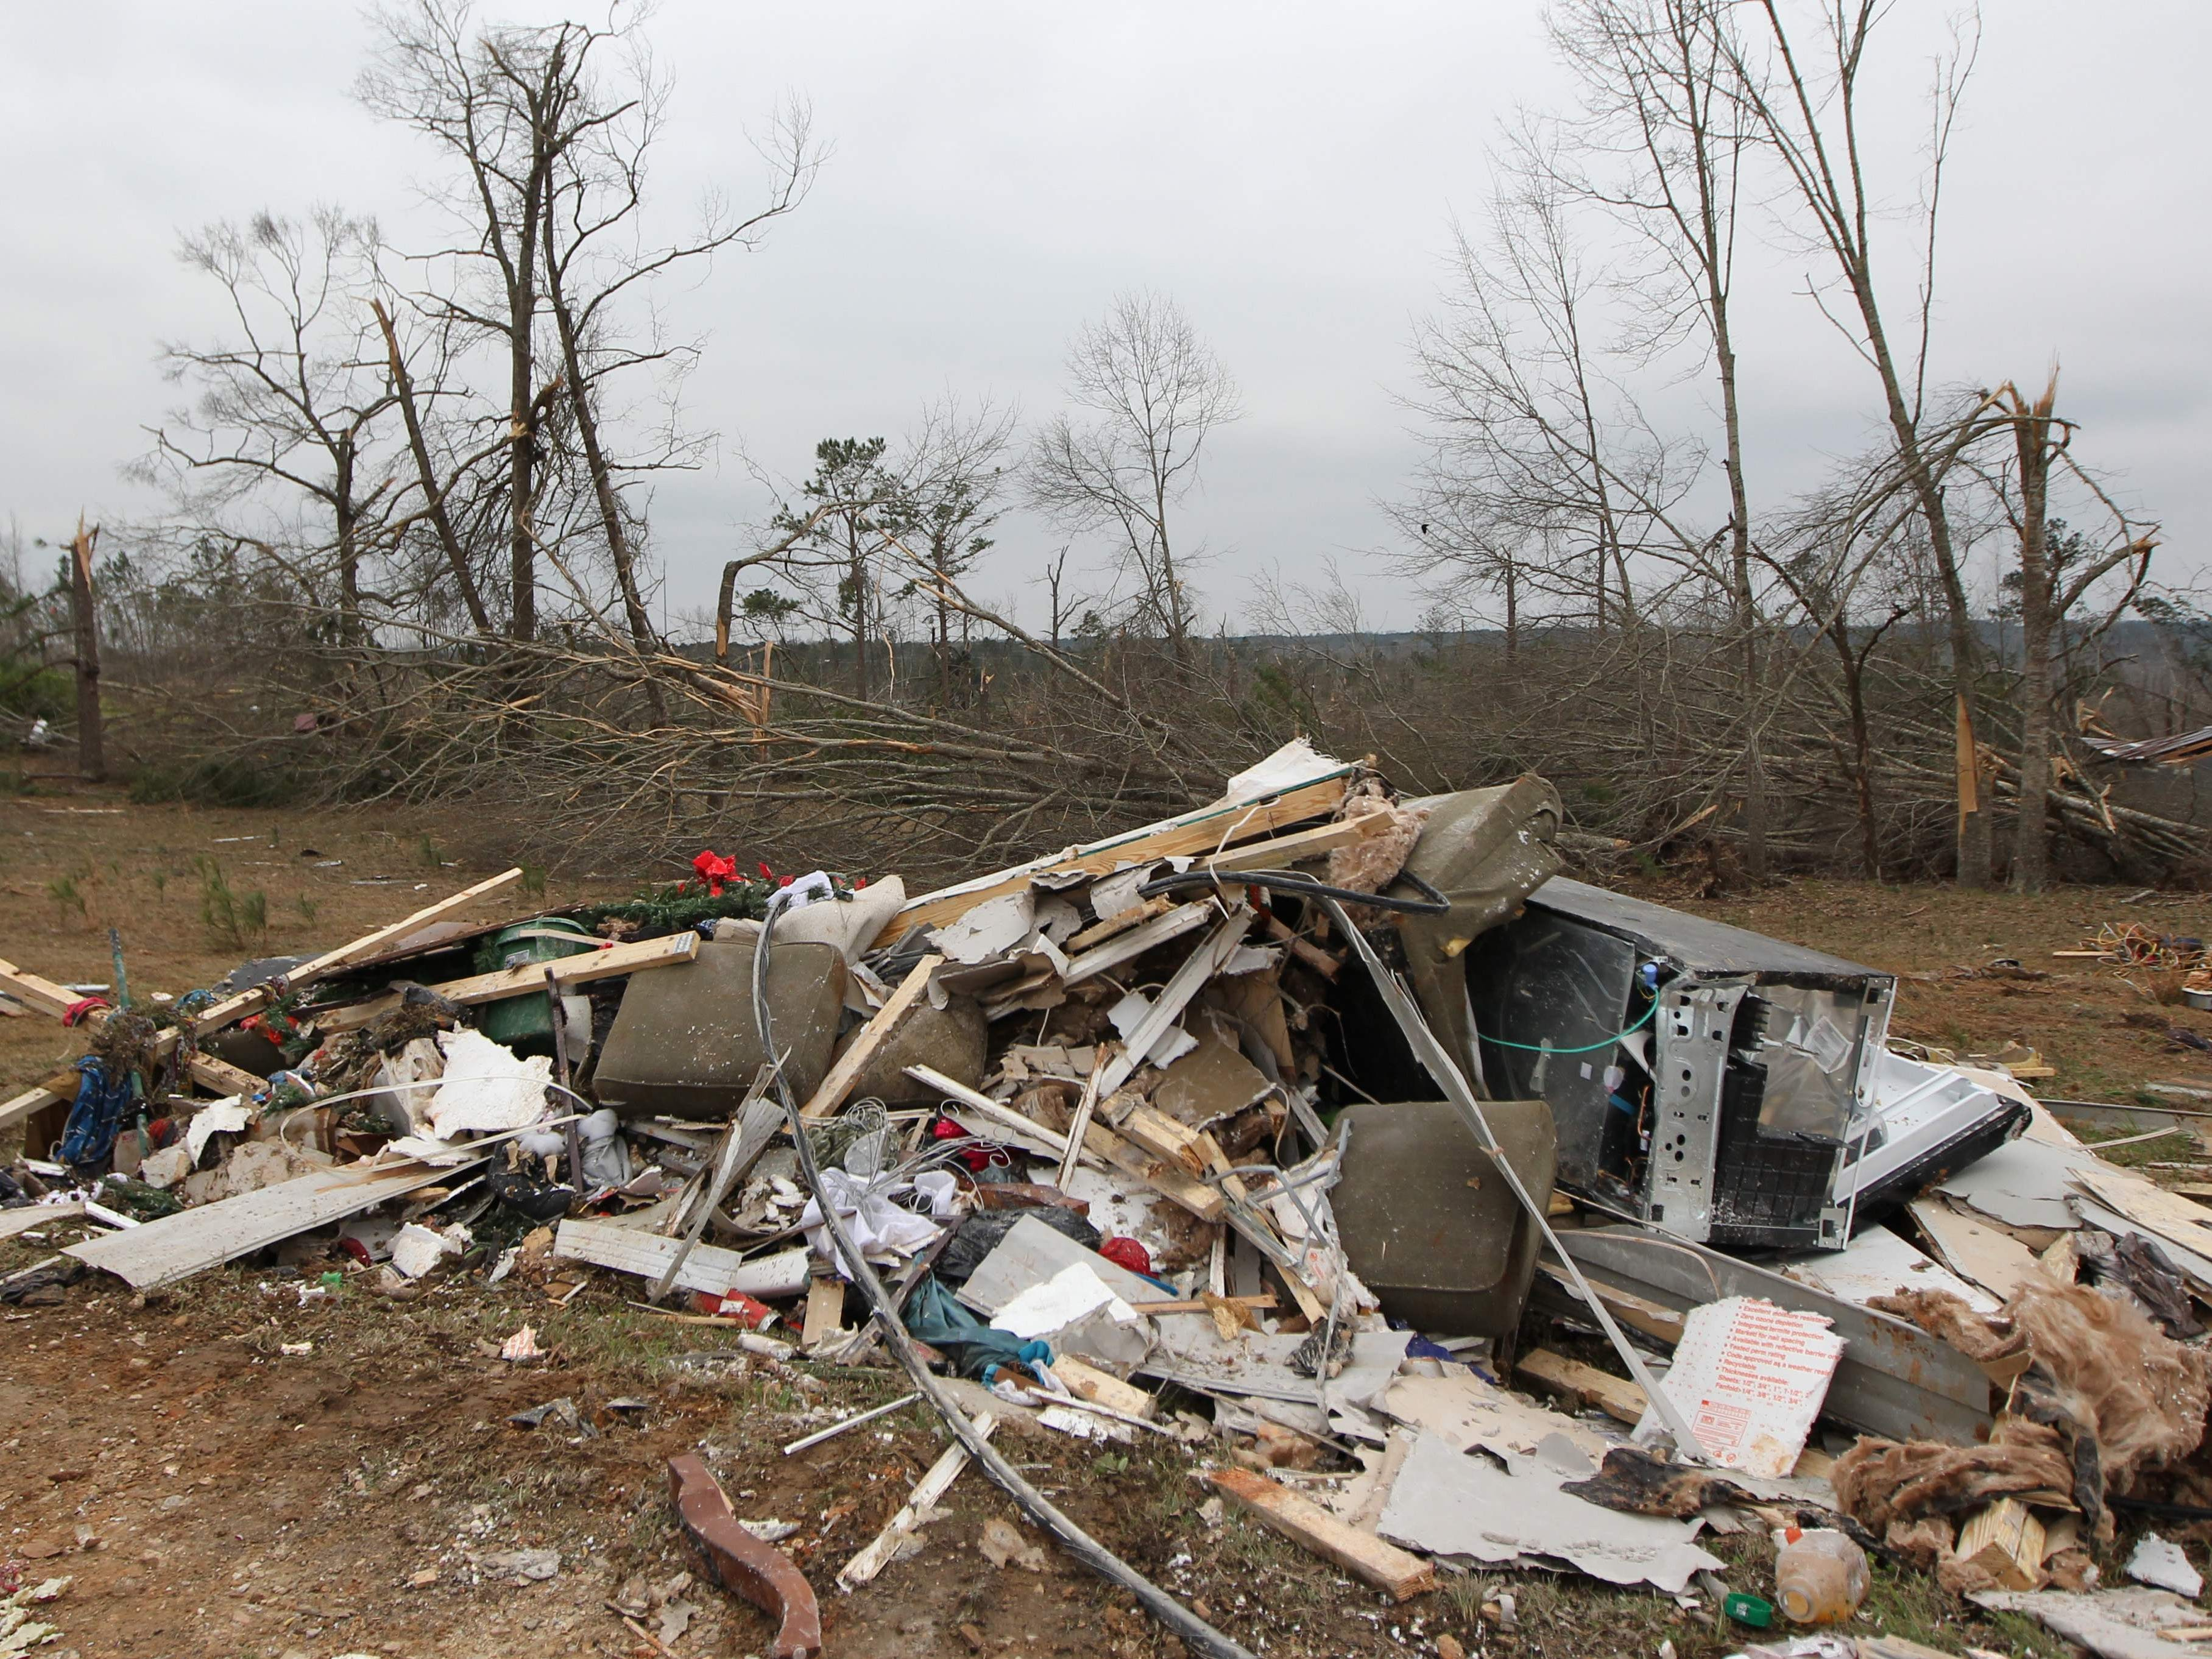 """Damage is seen from a tornado which killed at least 23 people in Beauregard, Alabama on March 4, 2019. - Rescuers in Alabama were set to resume search operations Monday after at least two tornadoes killed 23 people, uprooted trees and caused """"catastrophic"""" damage to buildings and roads in the southern US state.""""The devastation is incredible,"""" Lee County Sheriff Jay Jones told the local CBS affiliate late Sunday.""""I cannot recall at least in the last 50 years... a situation where we have had this loss of life that we experienced today."""" (Photo by Tami Chappell / AFP)TAMI CHAPPELL/AFP/Getty Images ORIG FILE ID: AFP_1E73RI"""